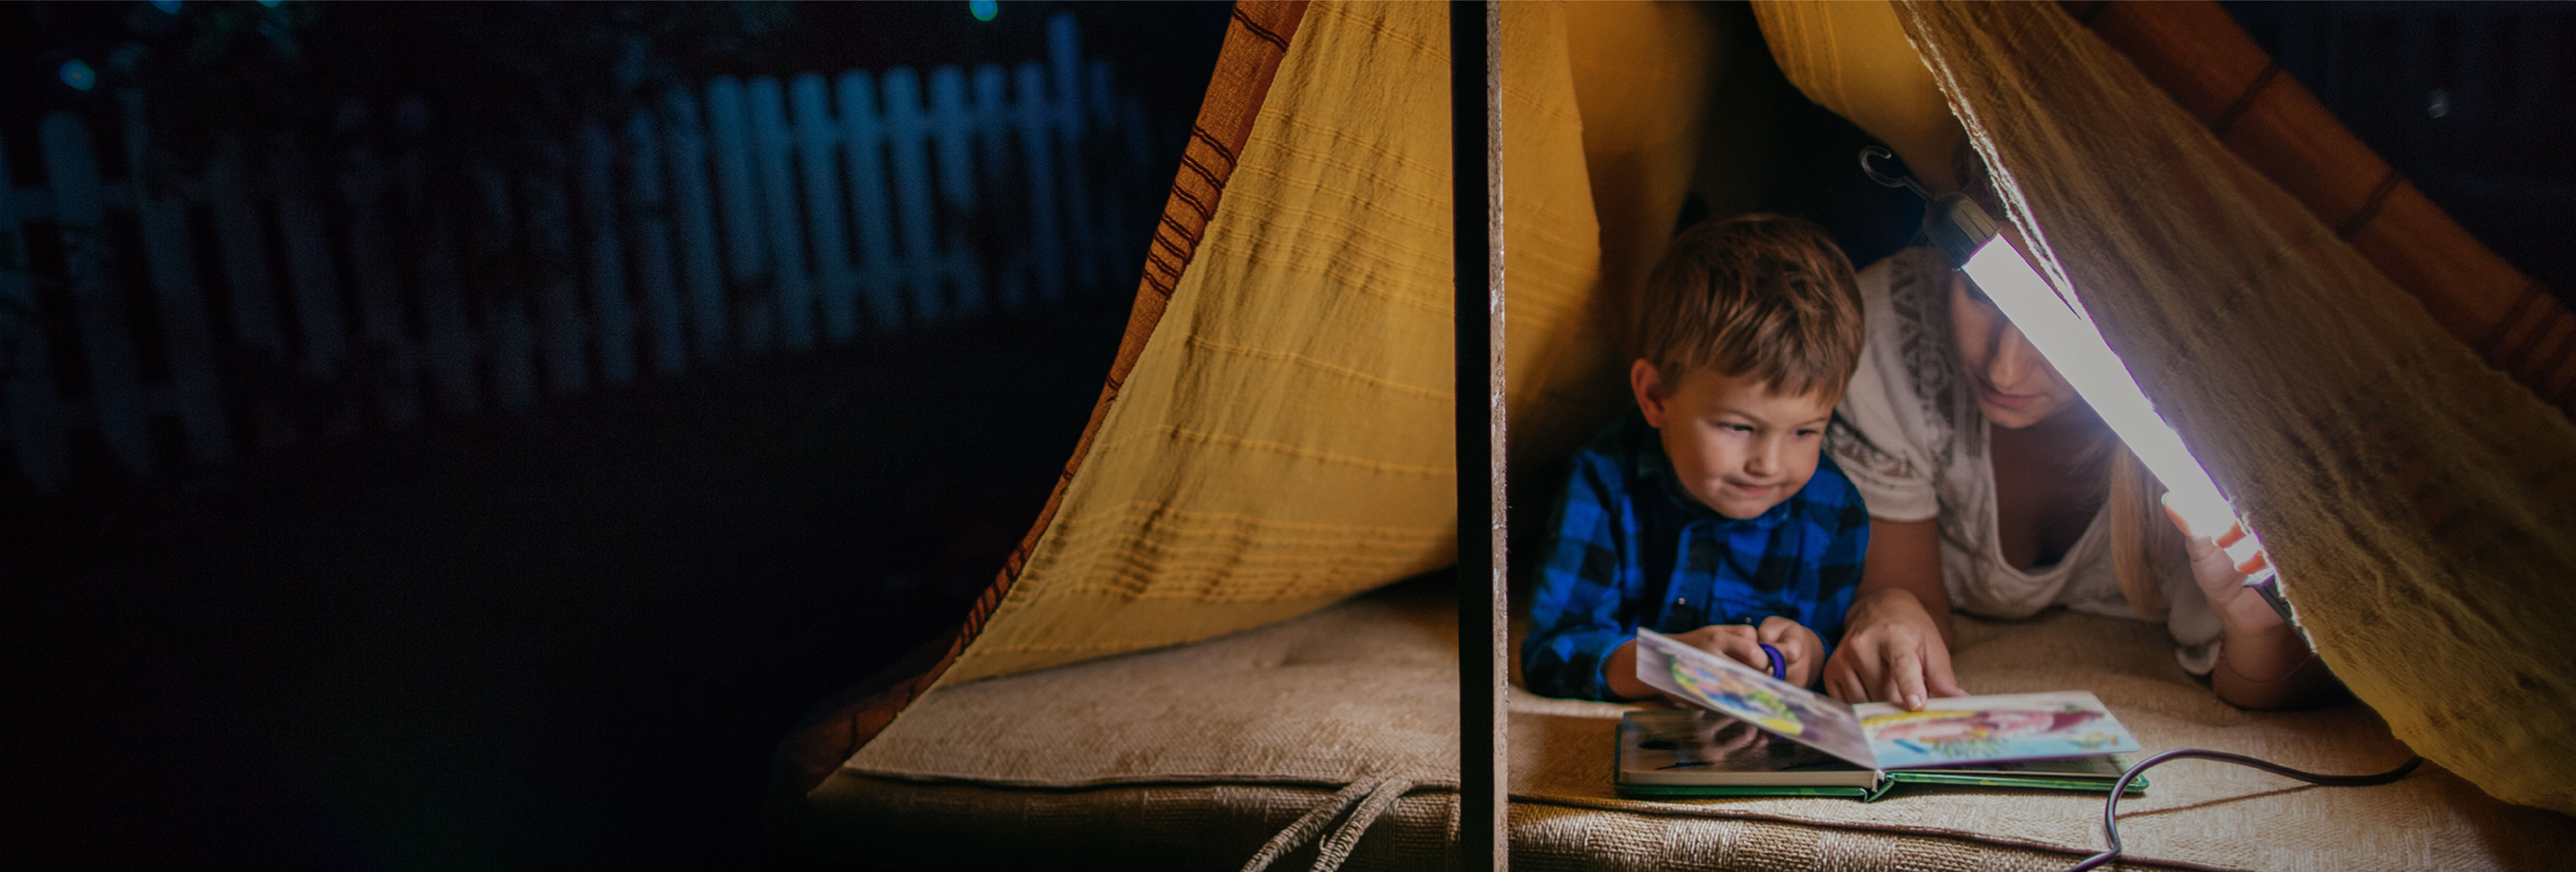 Little boy and mother in tent in backyard